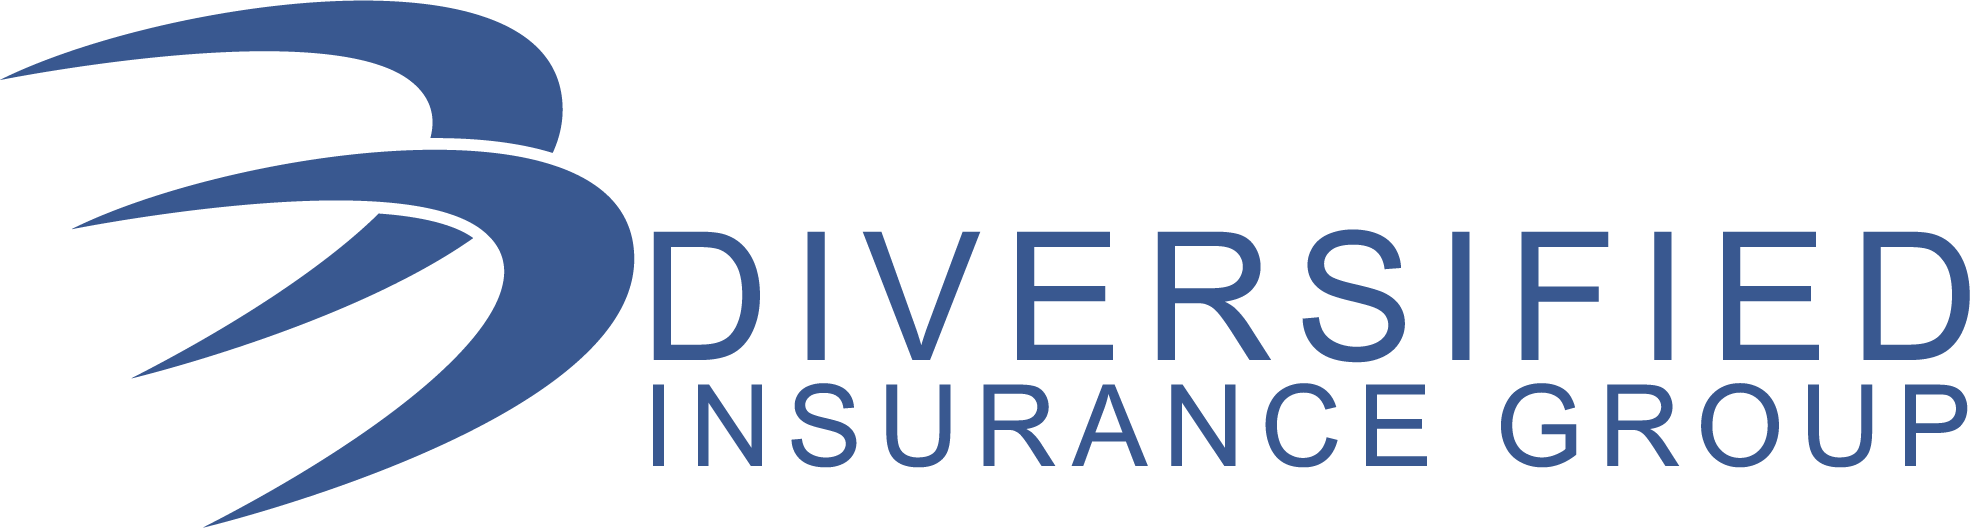 Diversified Insurance Group Company Logo